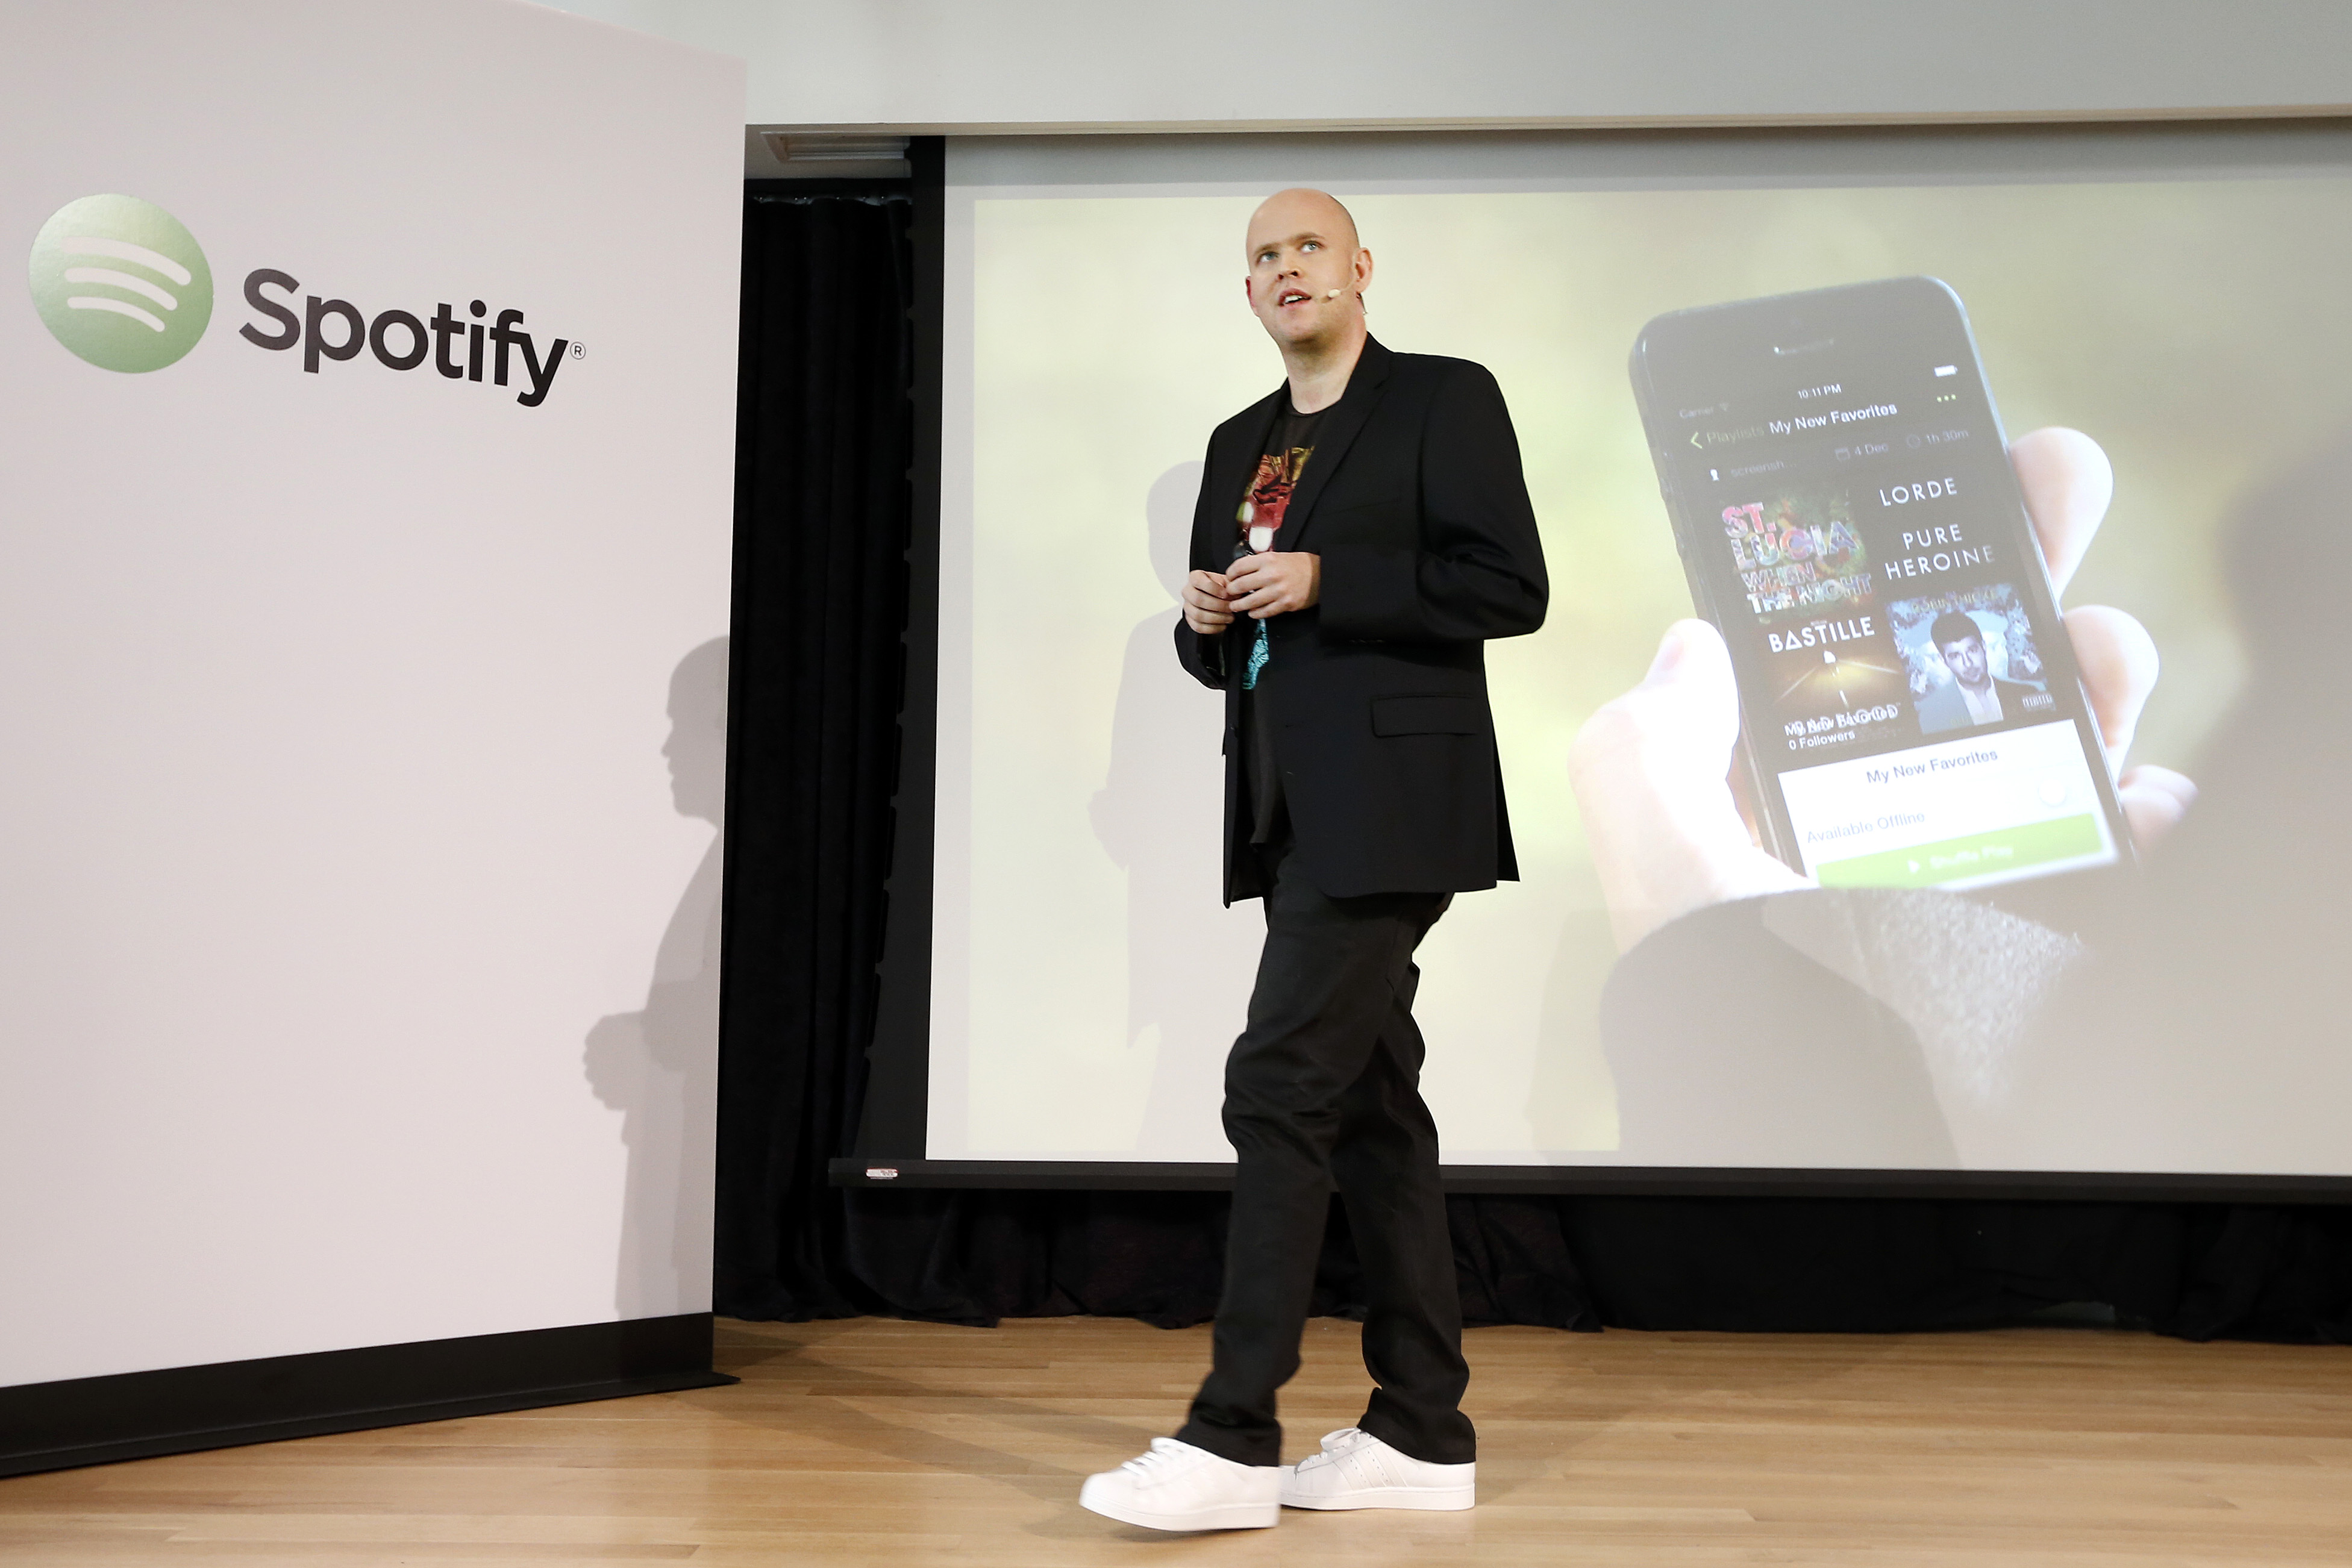 Spotify's Daniel Ek on Competition, Controversy and Crossing Over Into the Mainstream